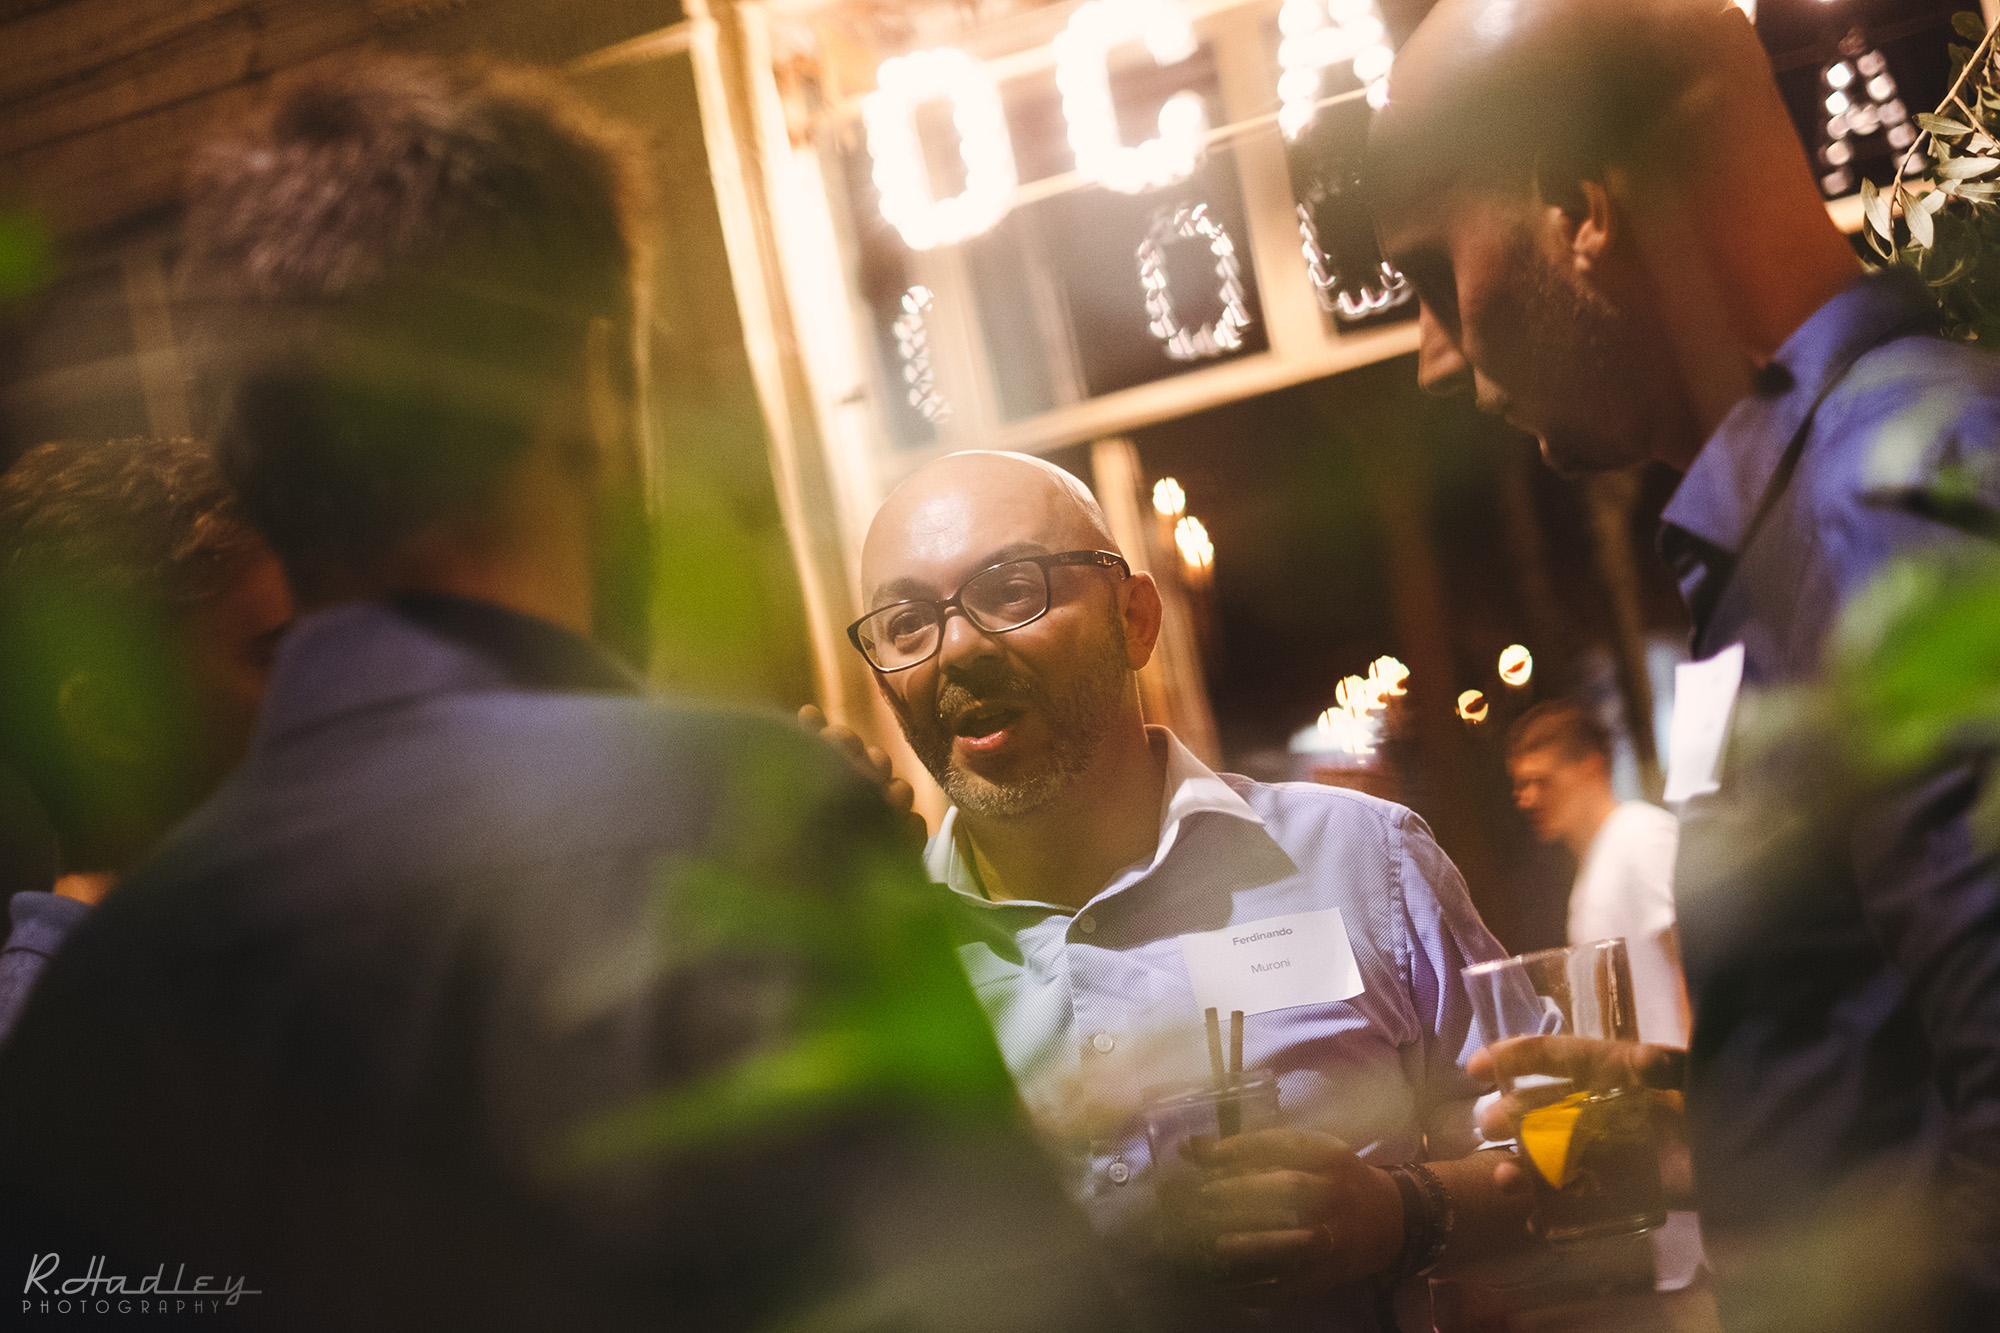 Relaxed & social networking event at Ocana in Barcelona